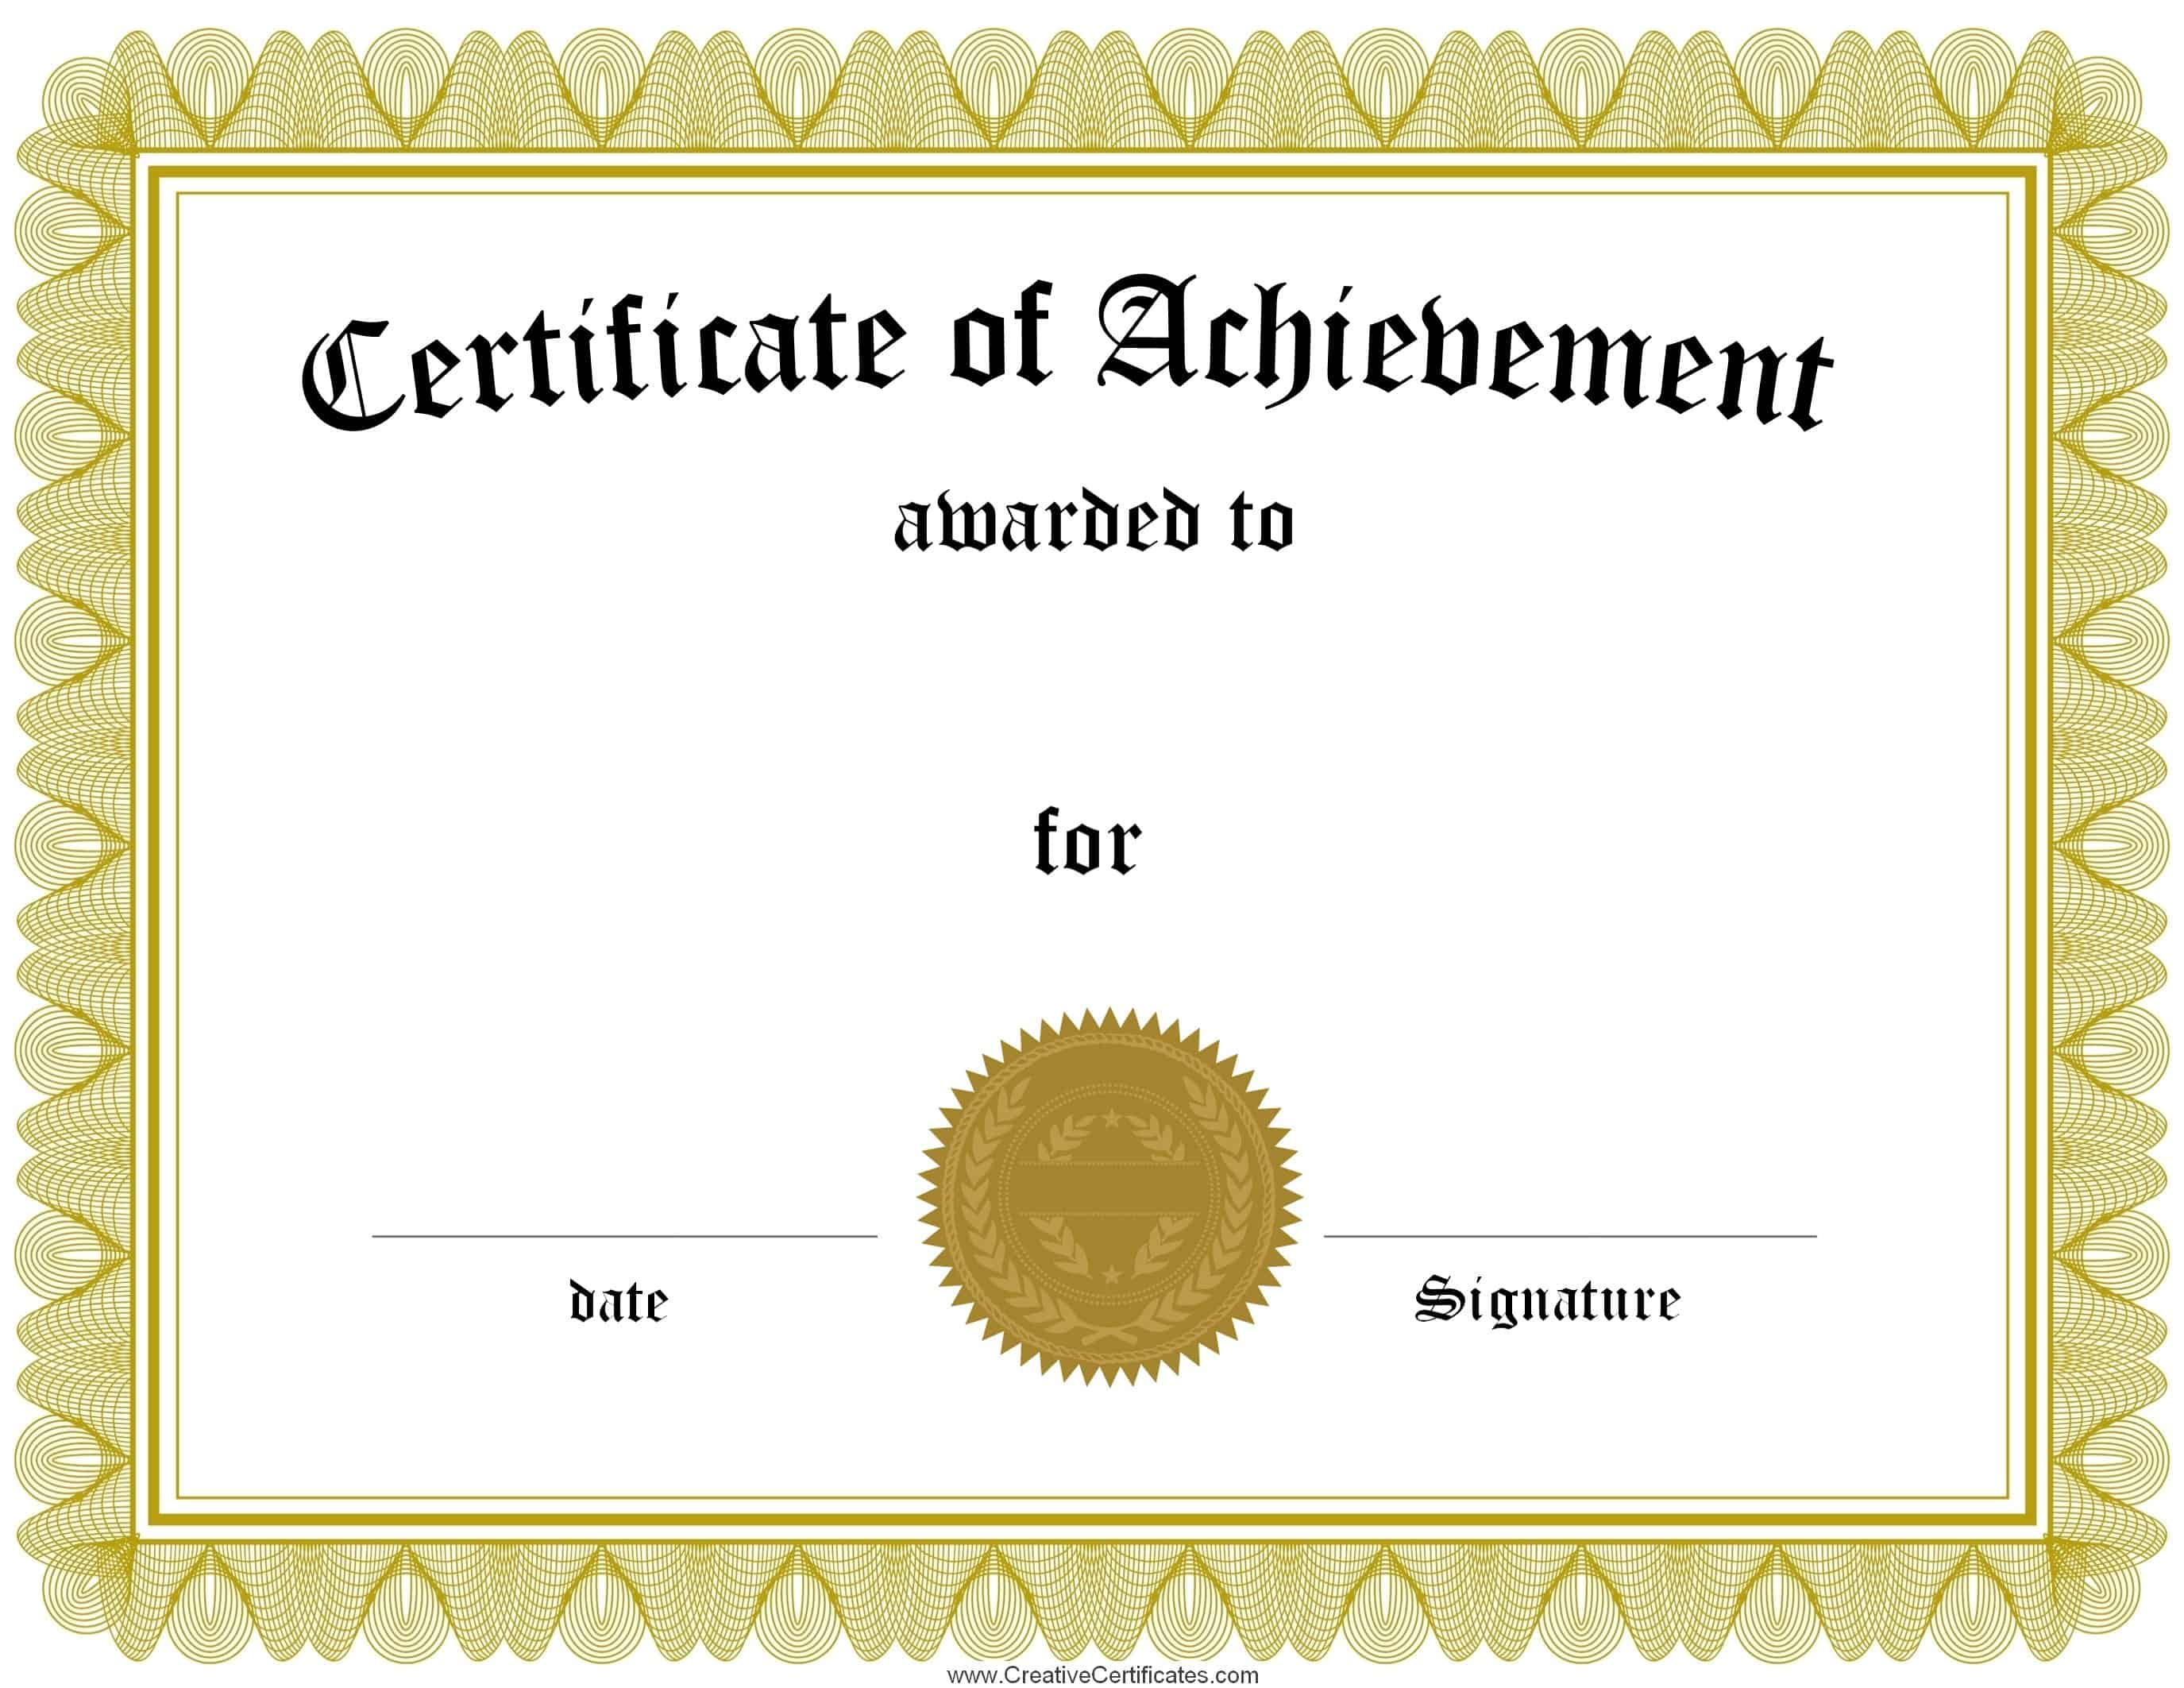 certificate of achievement - Certificate Of Accomplishment Template